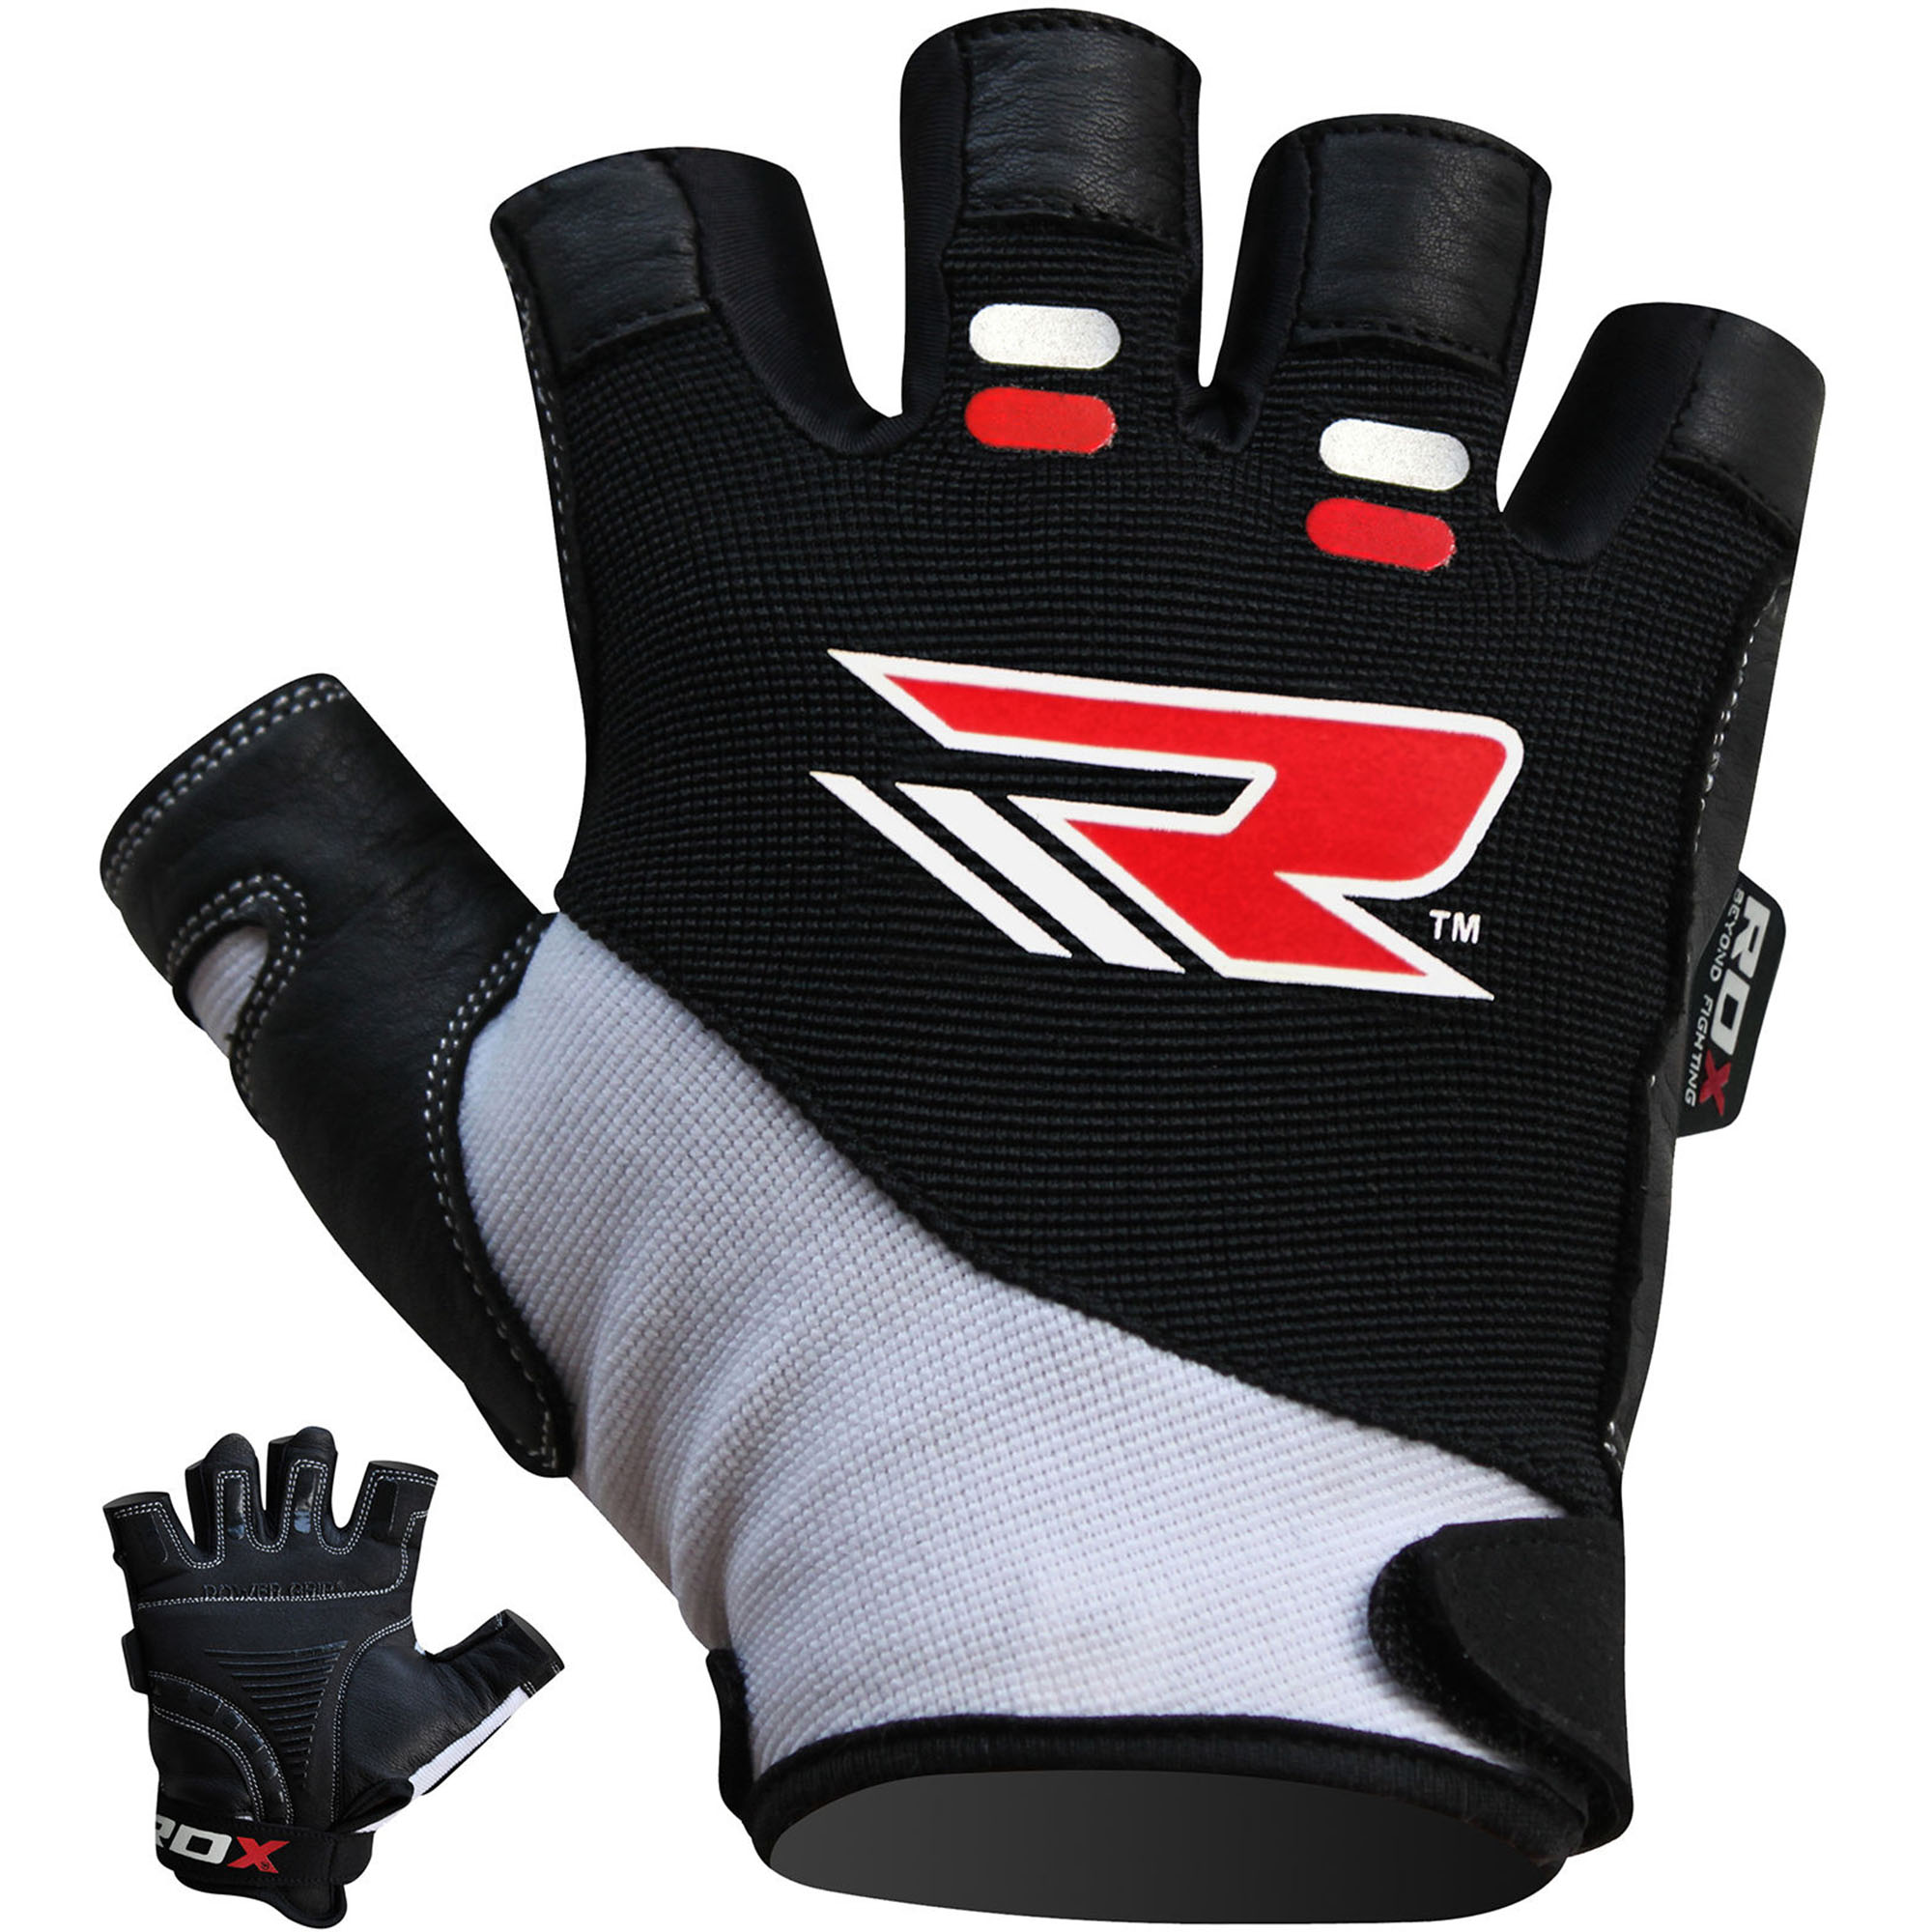 RDX Bodybuilding Weight Lifting Gloves, Large